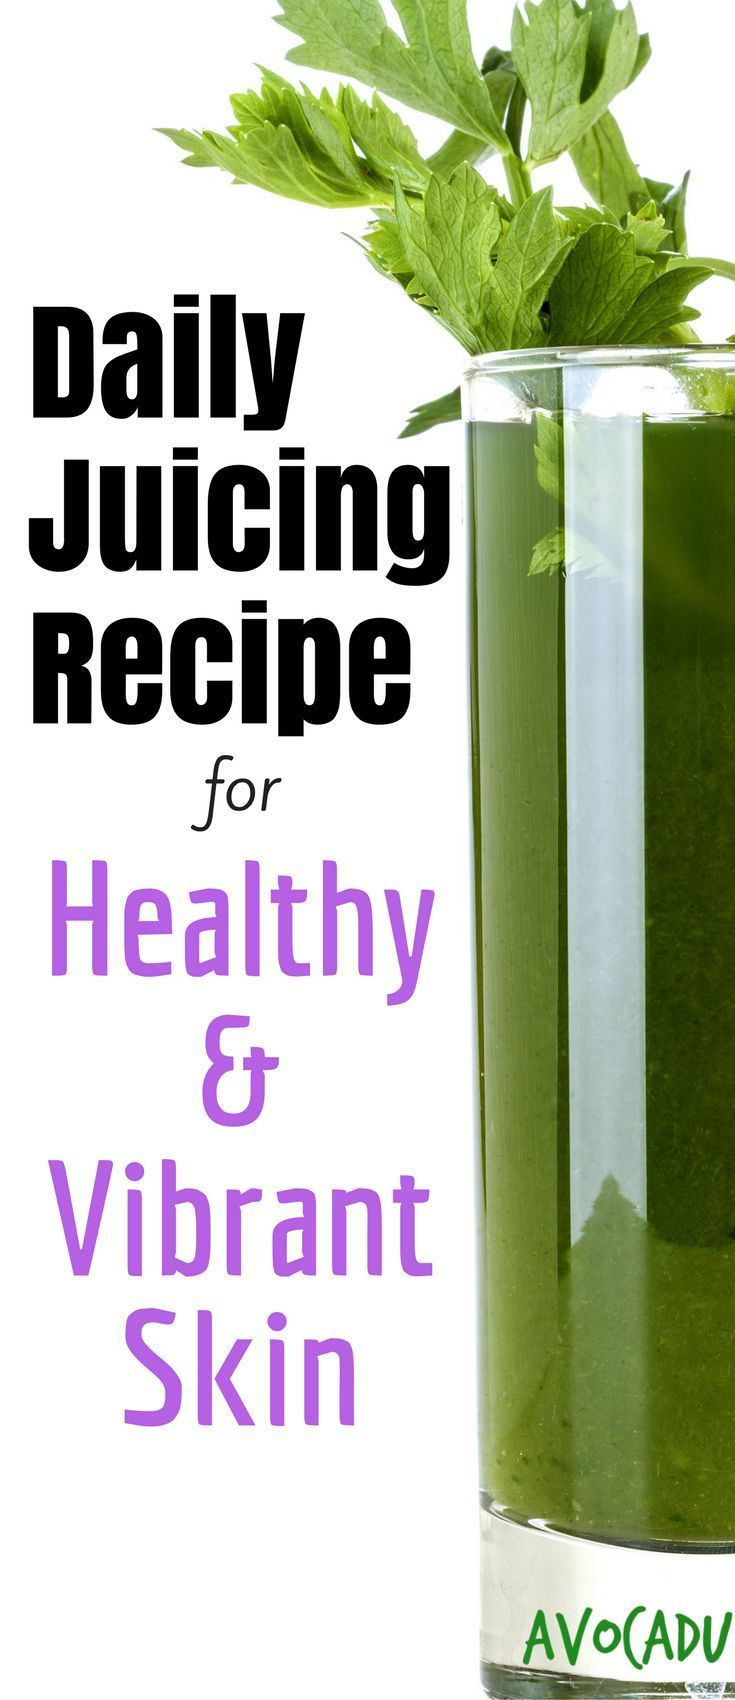 Daily juice recipe for healthy and vibrant skin   Healthy smoothie recipe to lose weight and feel great! http://avocadu.com/daily-juicing-recipe-healthy-skin/